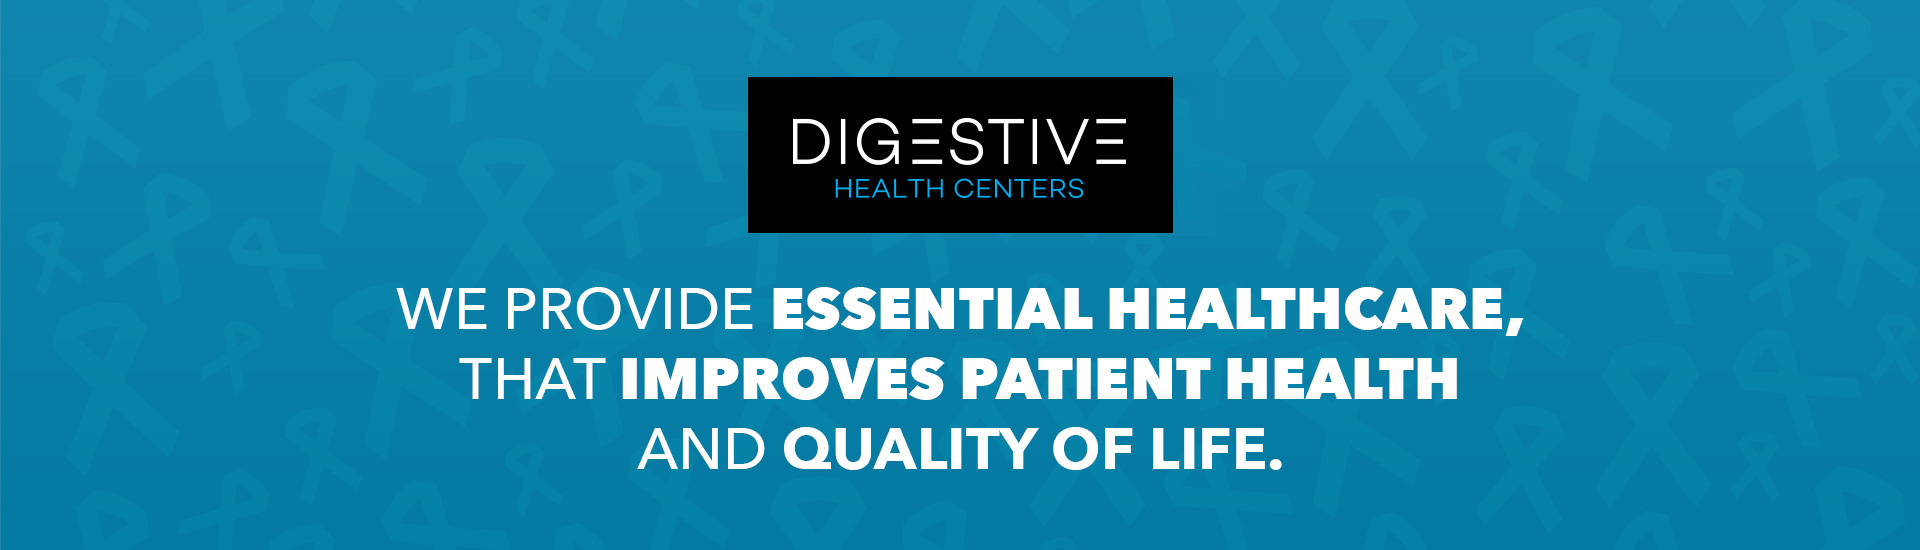 Digestive Health Centers - Providers of Essential Healthcare